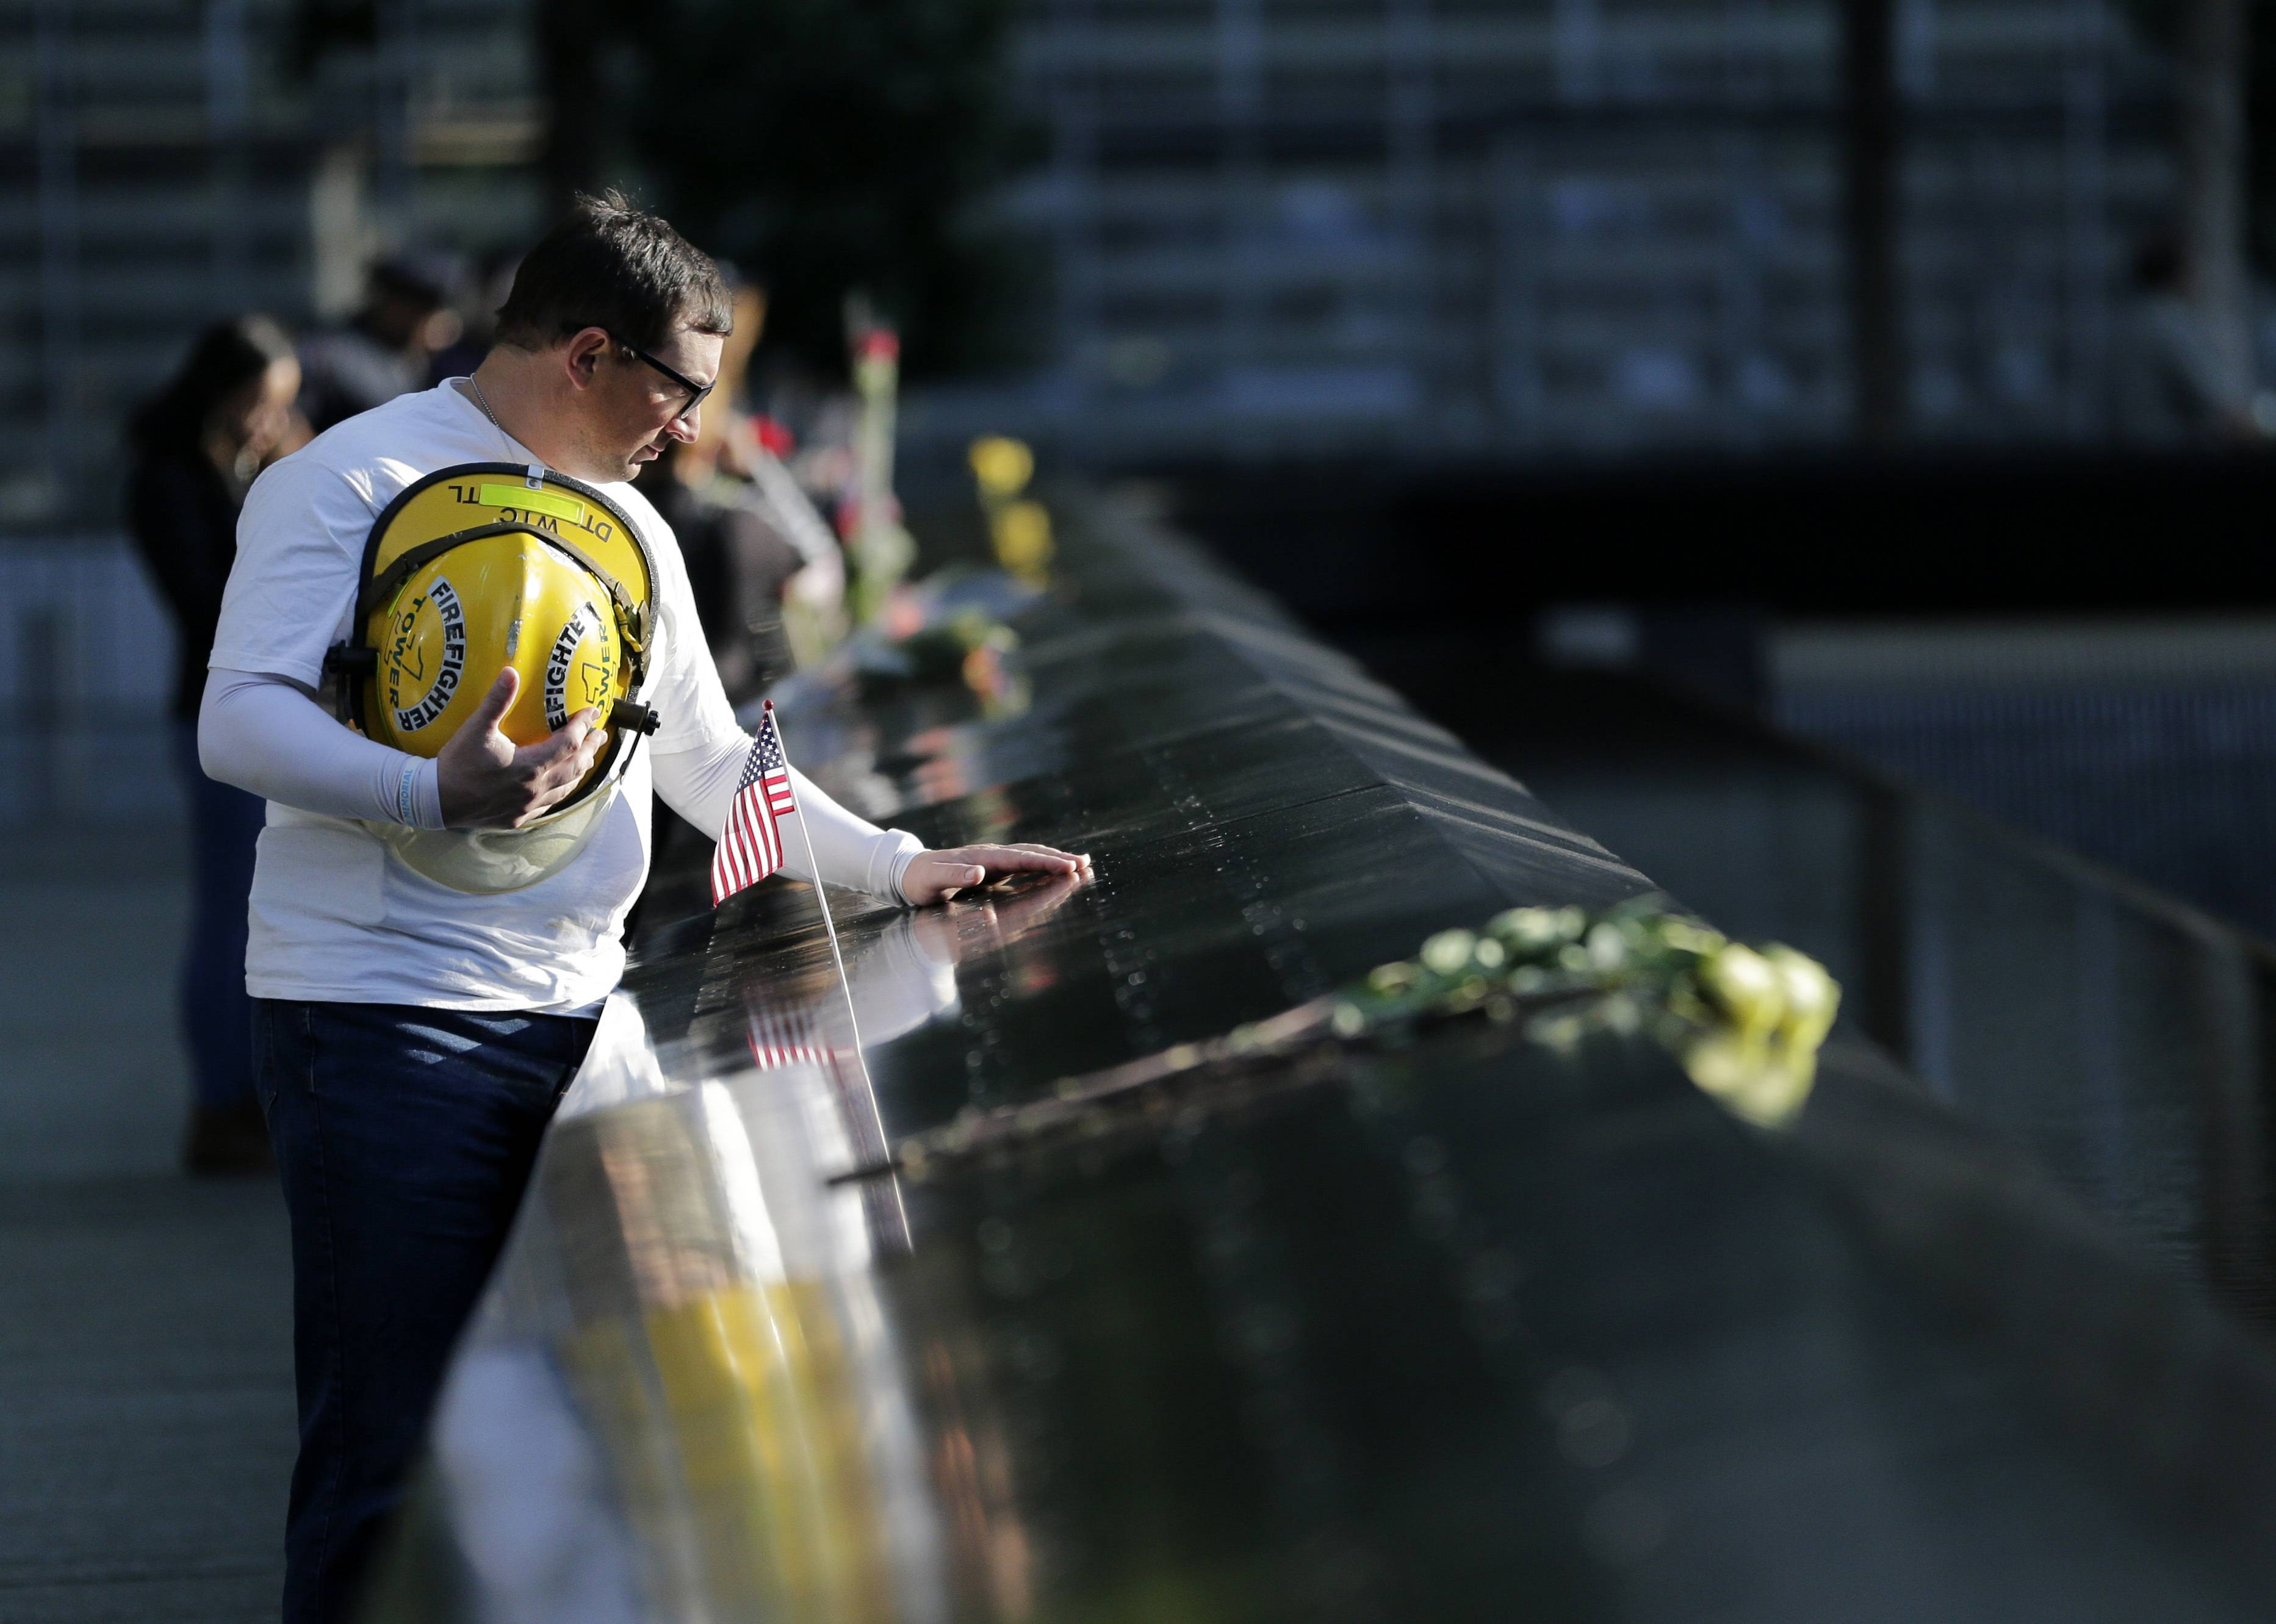 James Taormina, whose brother Dennis Taormina was killed during the Sept. 11 attacks stands by the side of the north waterfall pool before the a ceremony at ground zero in New York, Monday, Sept. 11, 2017. Holding photos and reading names of loved ones lost 16 years ago, 9/11 victims' relatives marked the anniversary of the attacks with a solemn and personal ceremony.